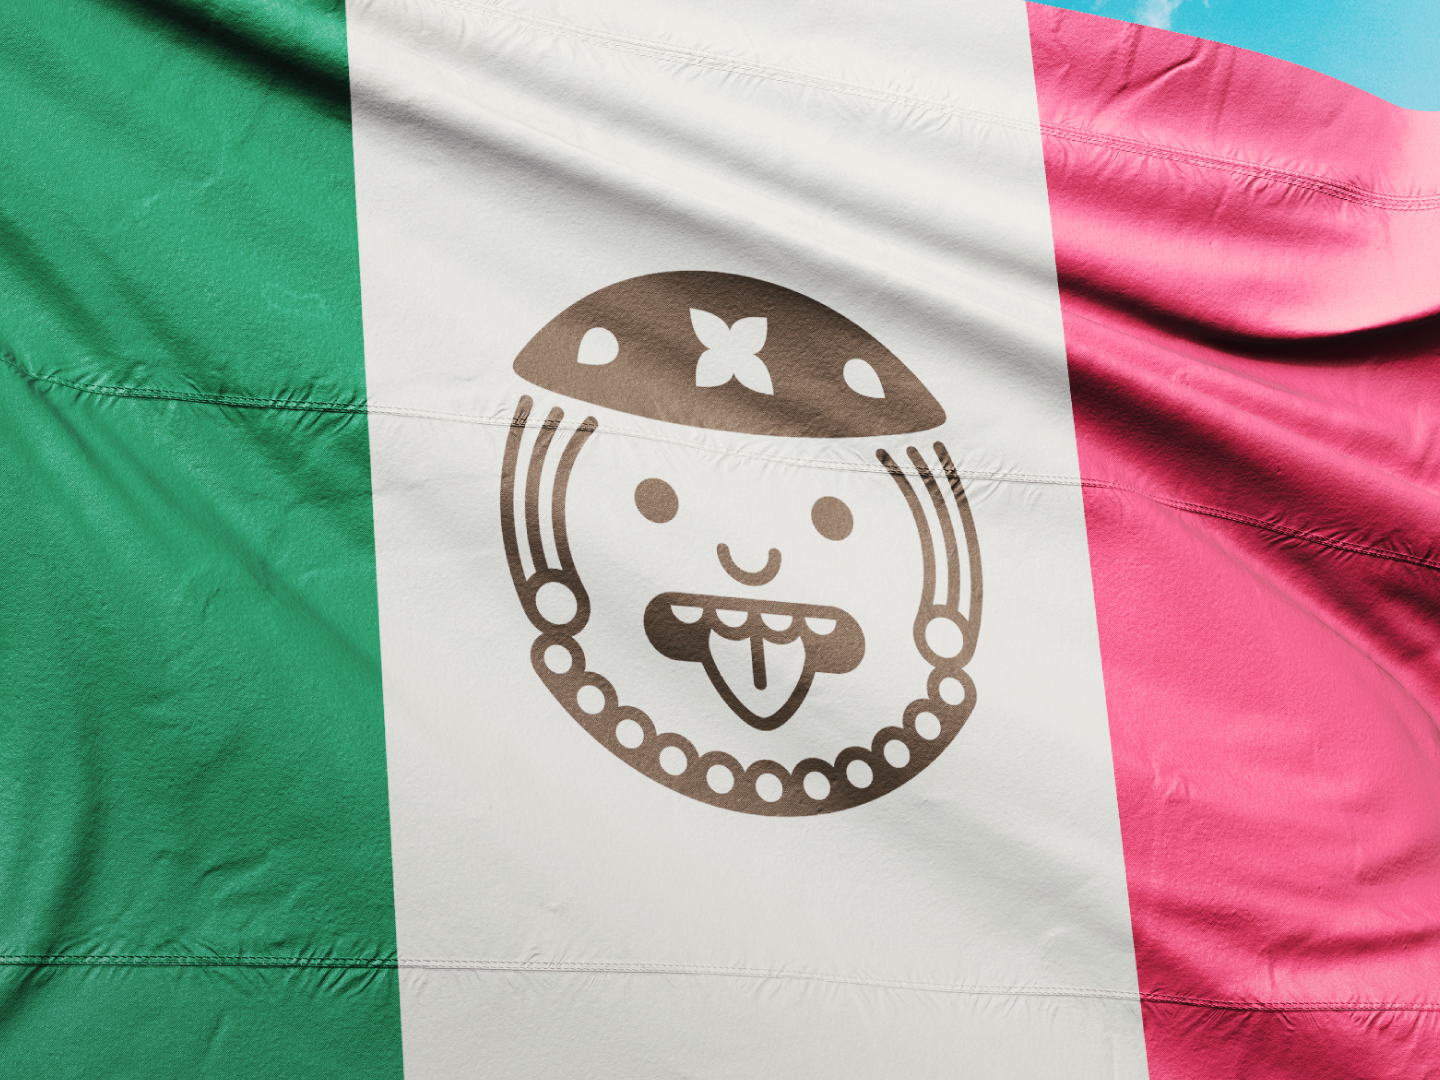 Bike in Mex | Flag clean minimalist creative flags geometric nation country symbol illustration branding design brand design branding rental bike brand bicycle maya aztec mexico flag